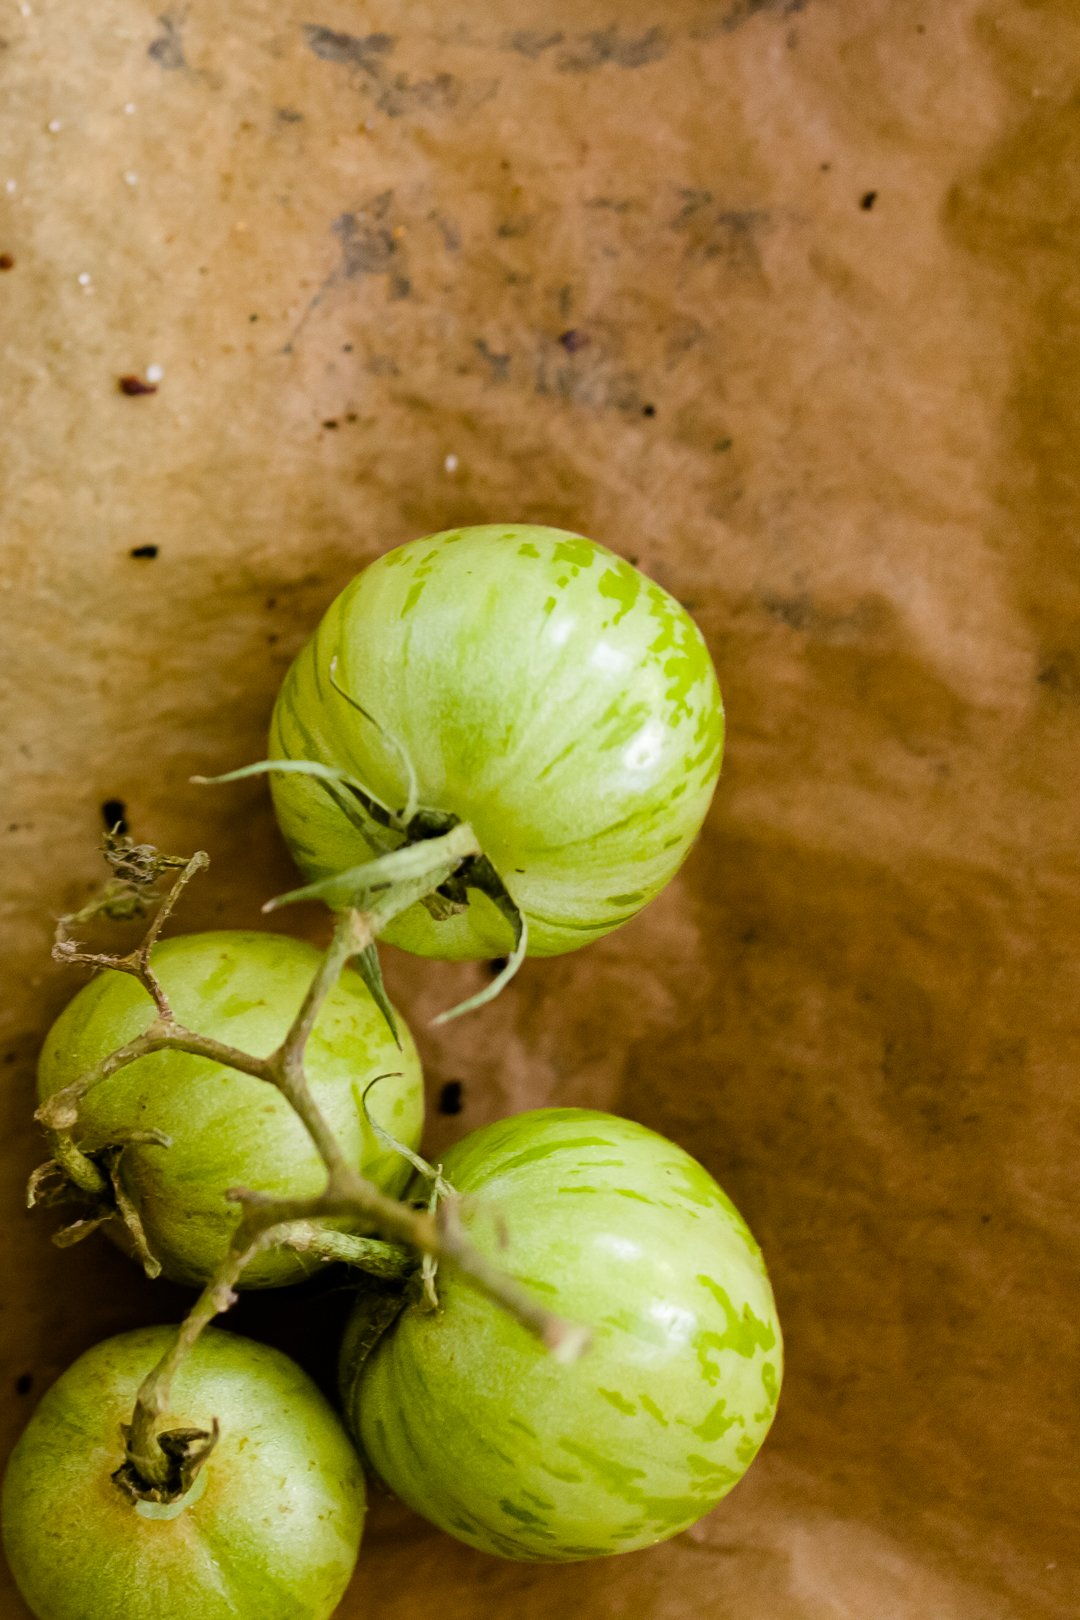 Unripe green tomatoes on a vine resting on brown butcher paper